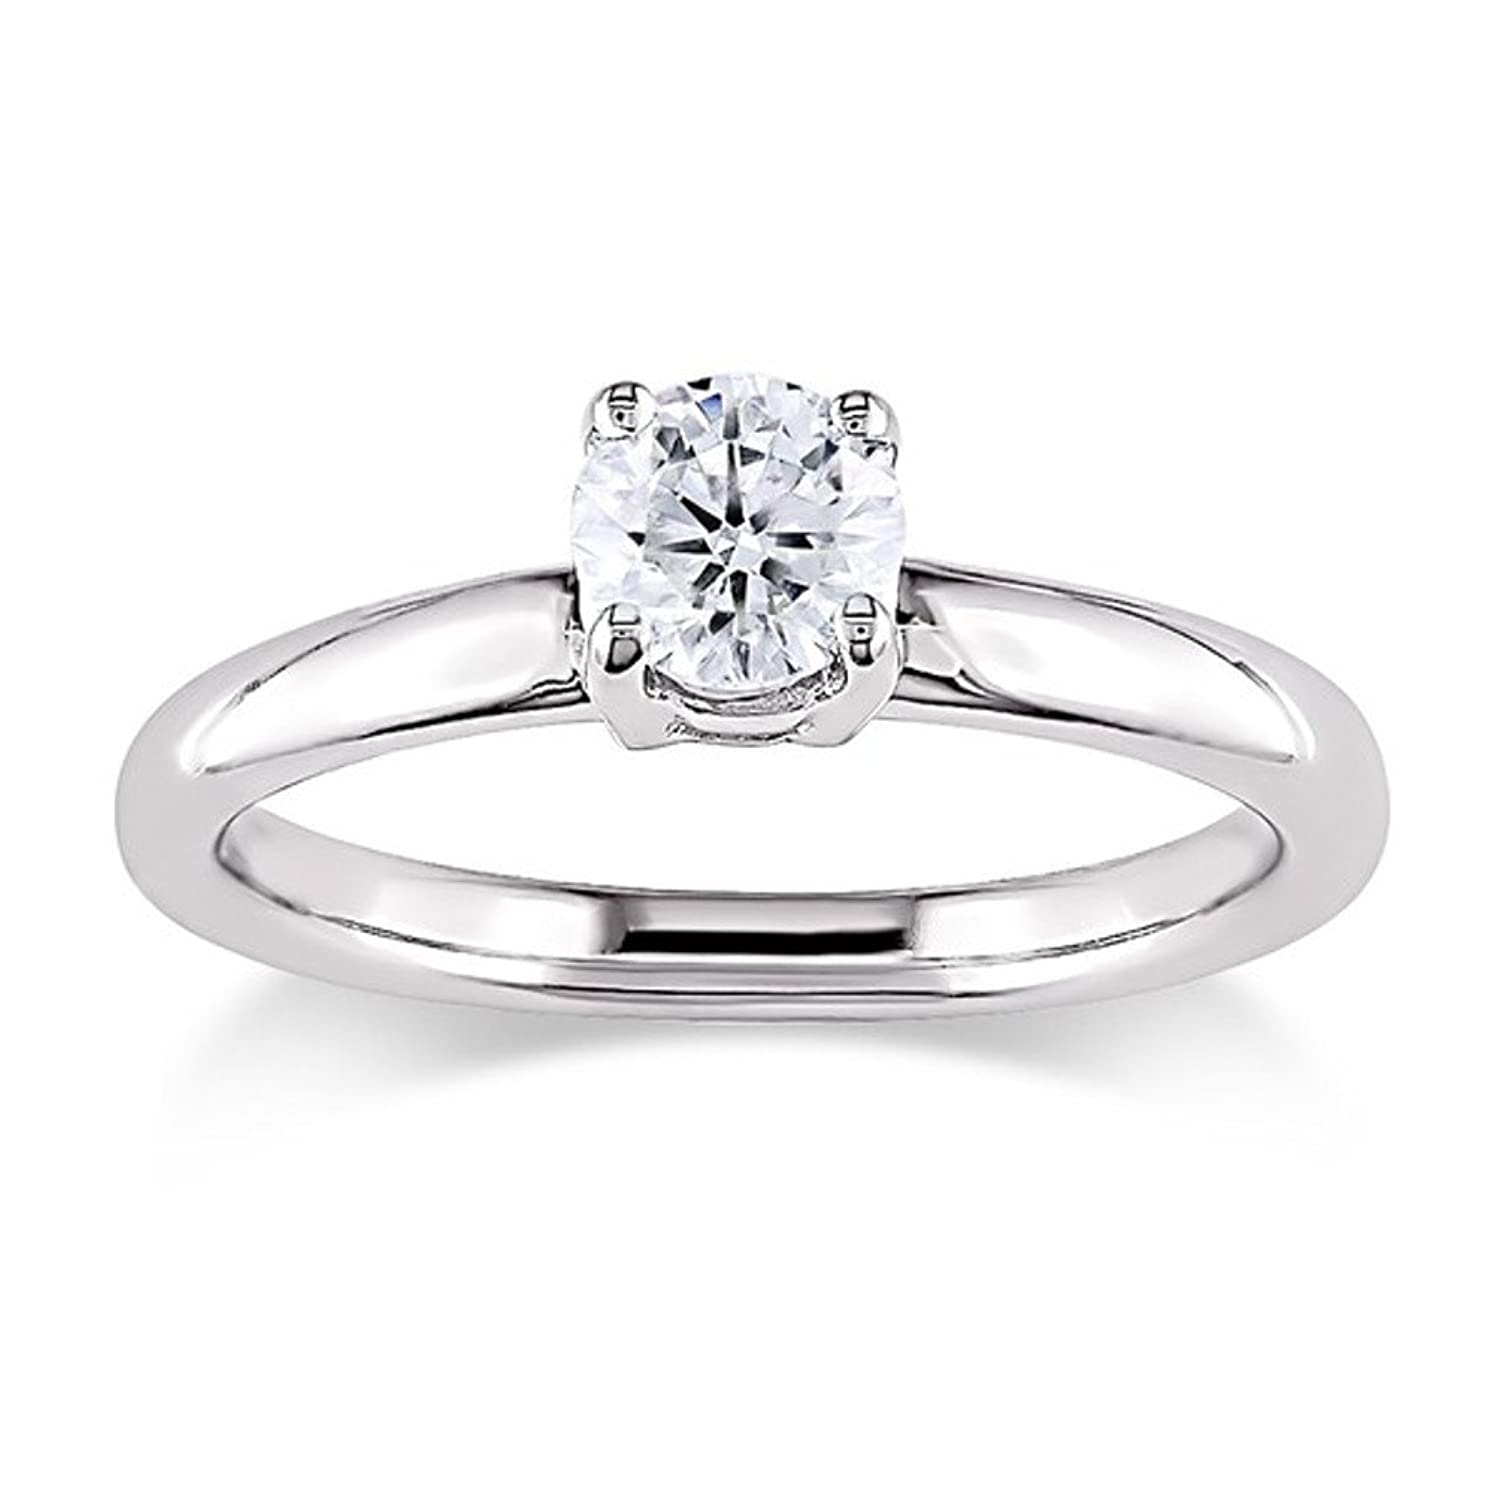 Diamond engagement ring with 1 5 carat SI Clarity natural diamond